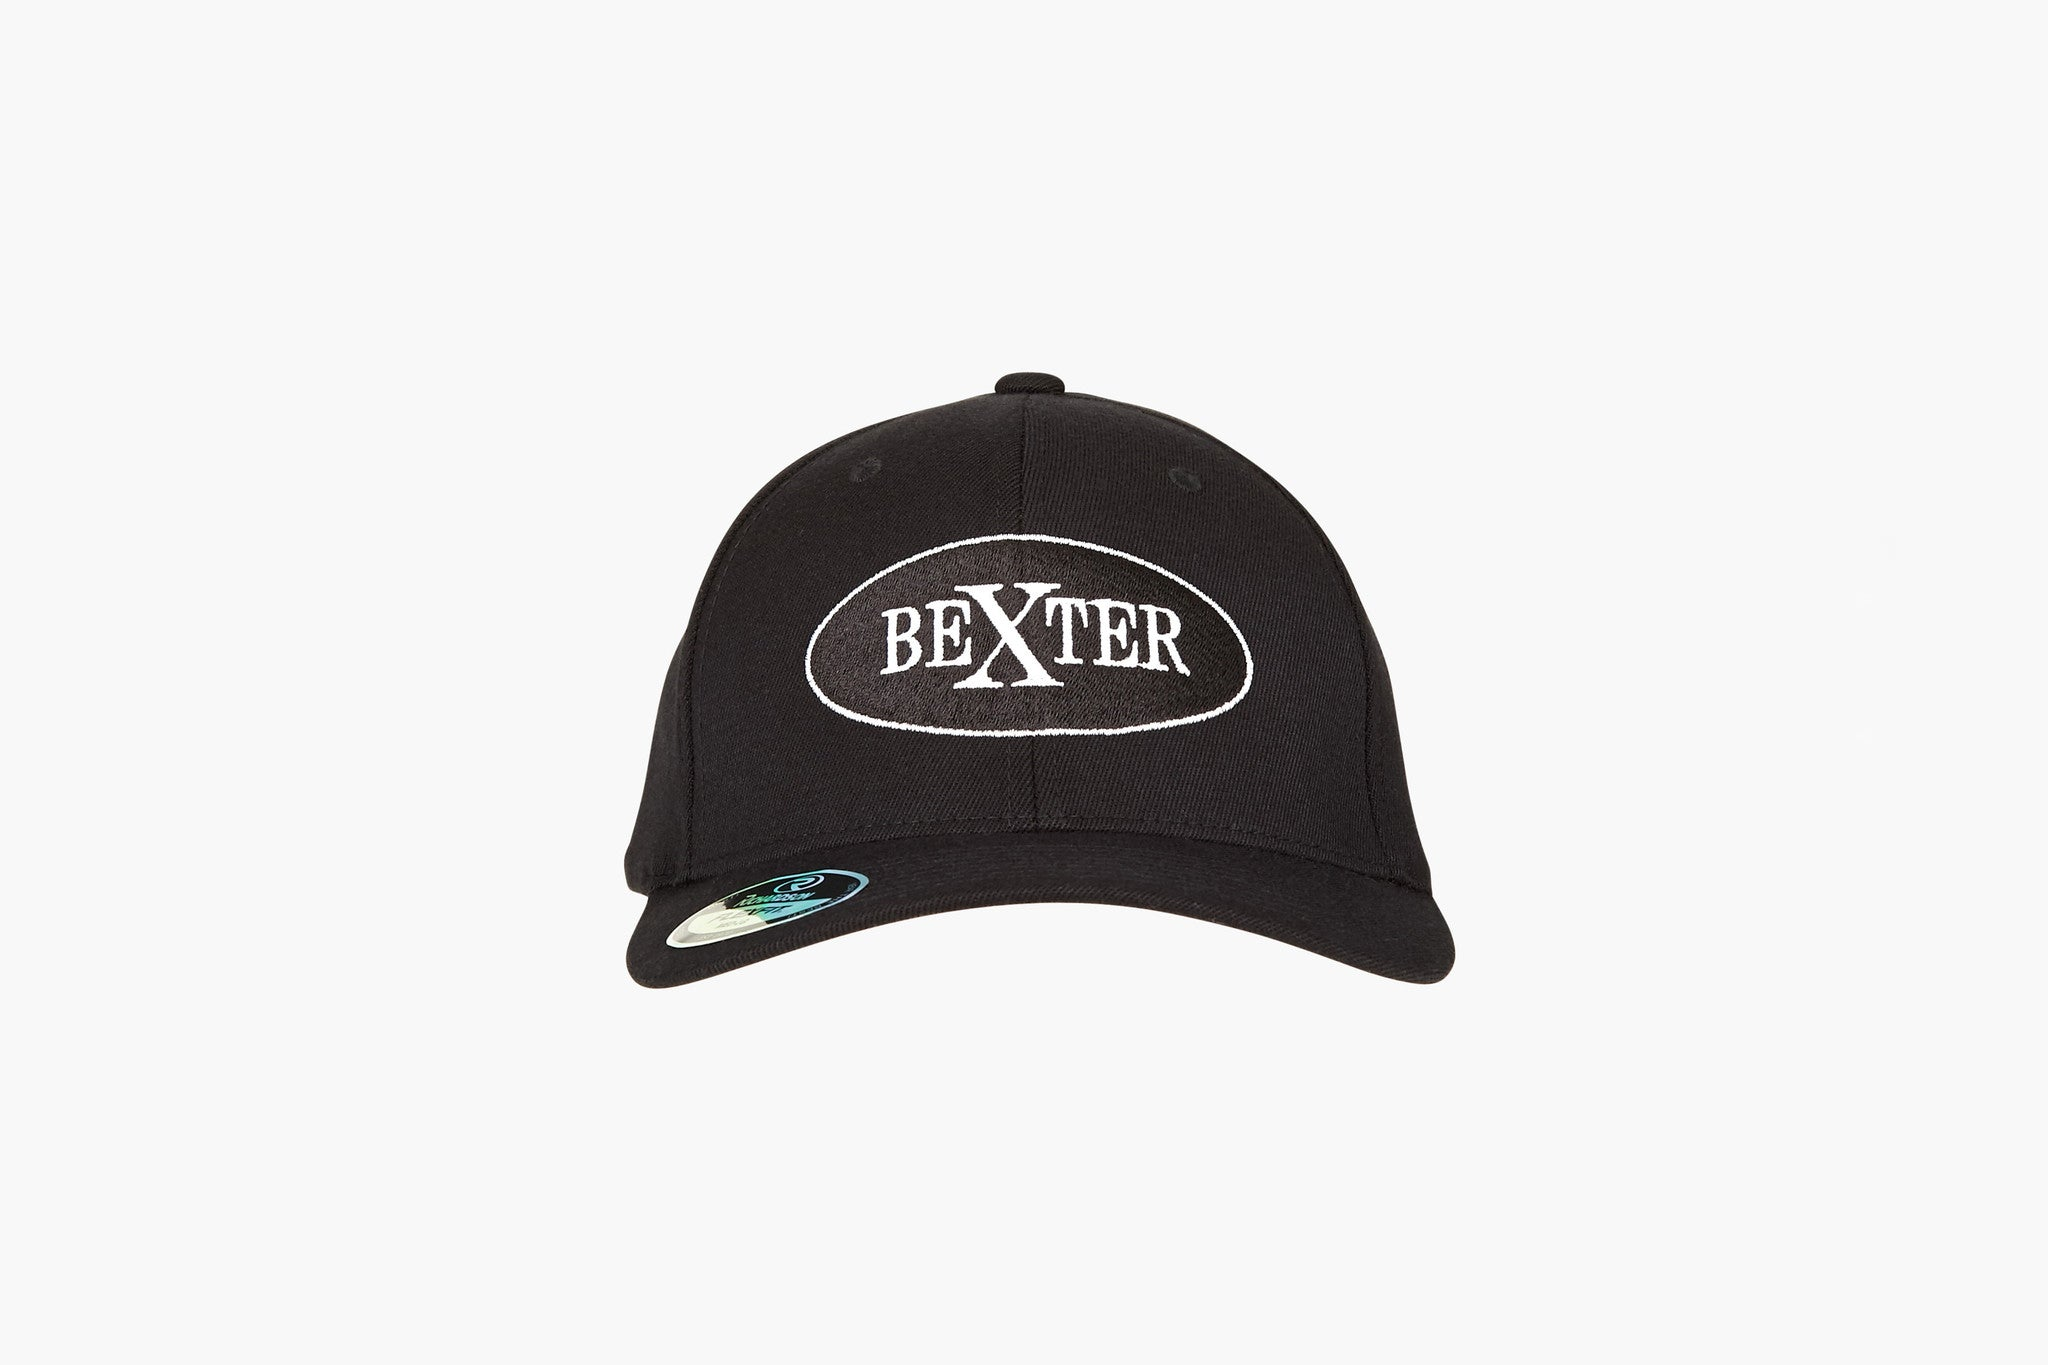 Bexter Flex Fit Baseball Cap-Apparel-Bexter Sports